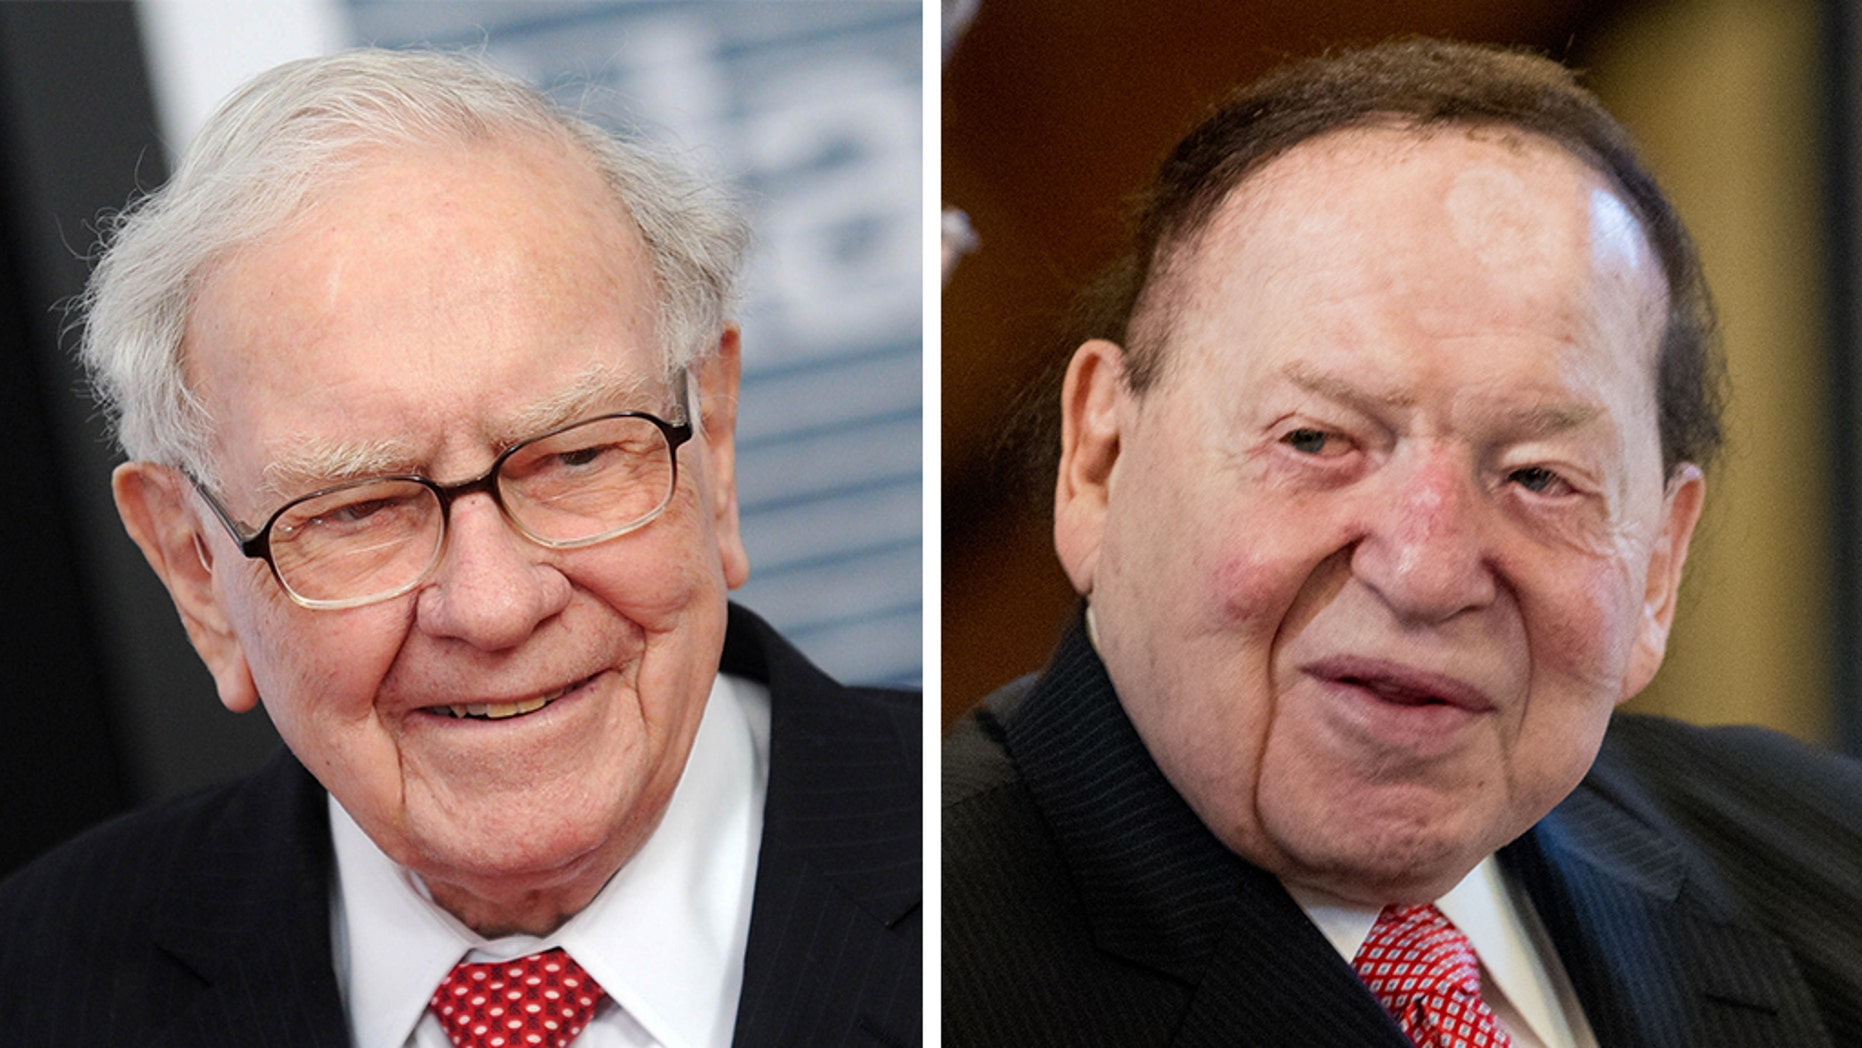 Warren Buffett, left, has engaged in a political fight withSheldon Adelson over Nevada's energy.